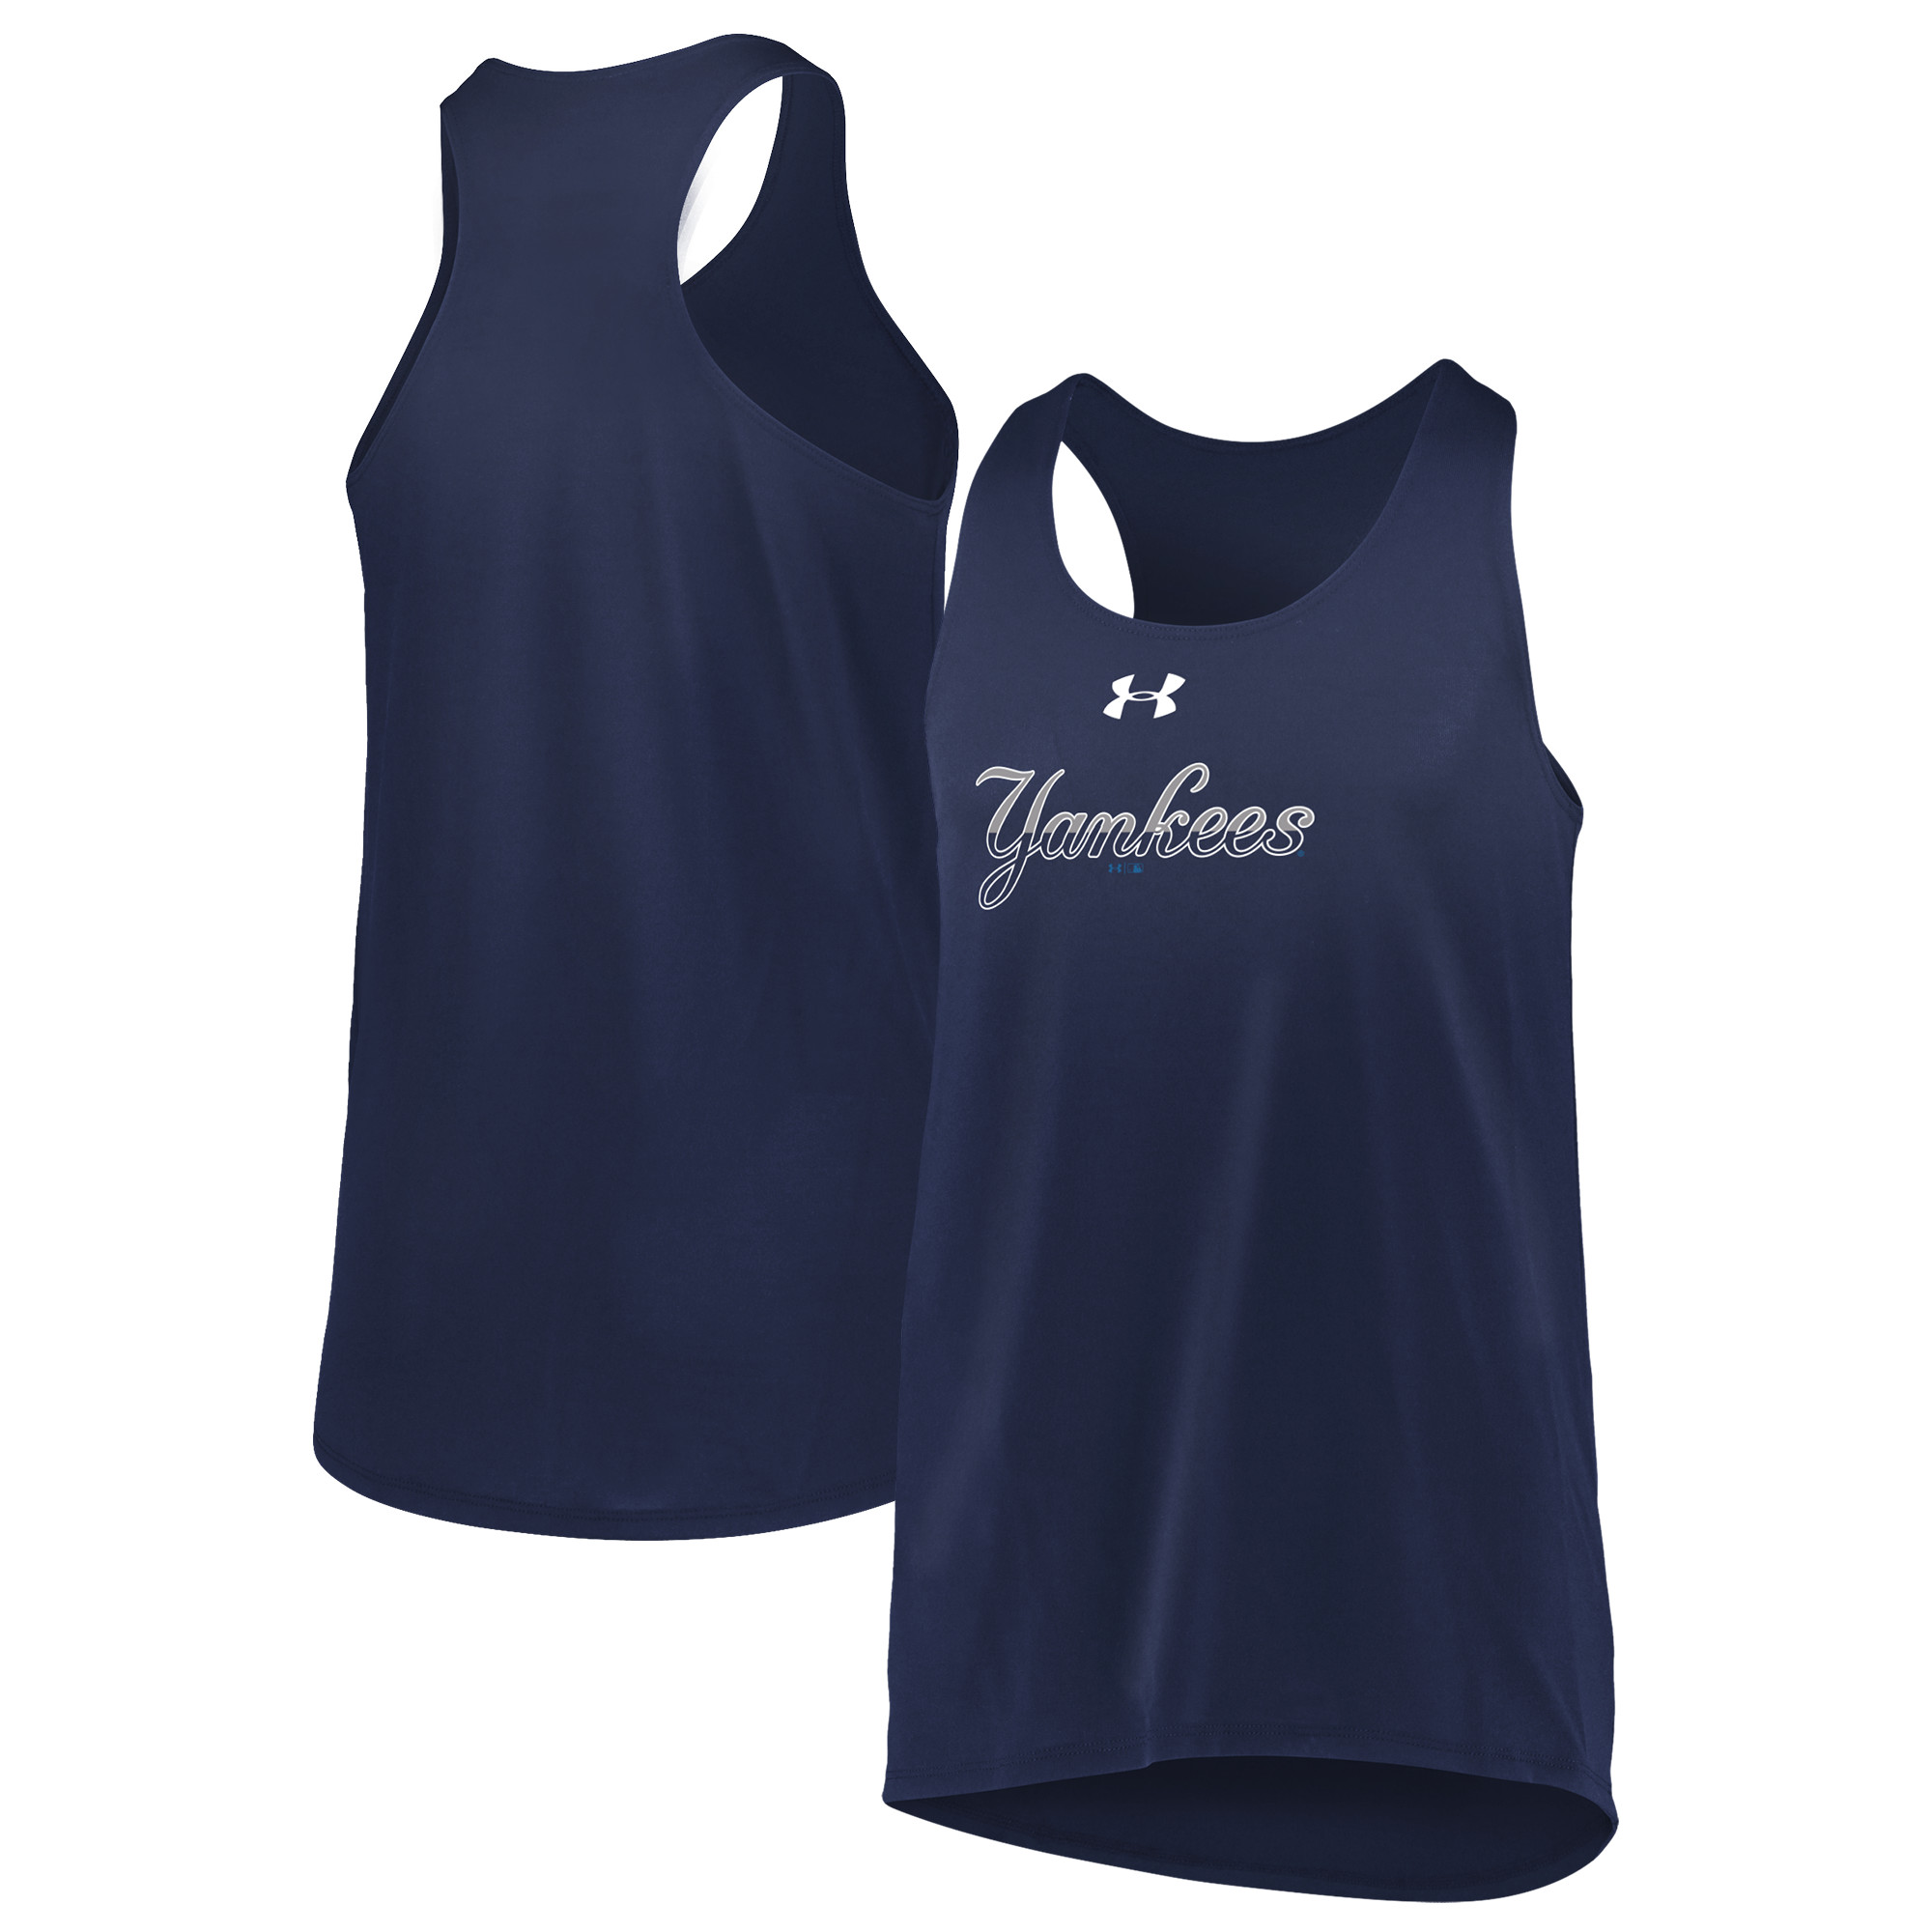 New York Yankees Under Armour Girls Youth Big Time Fan Tank Top - Navy